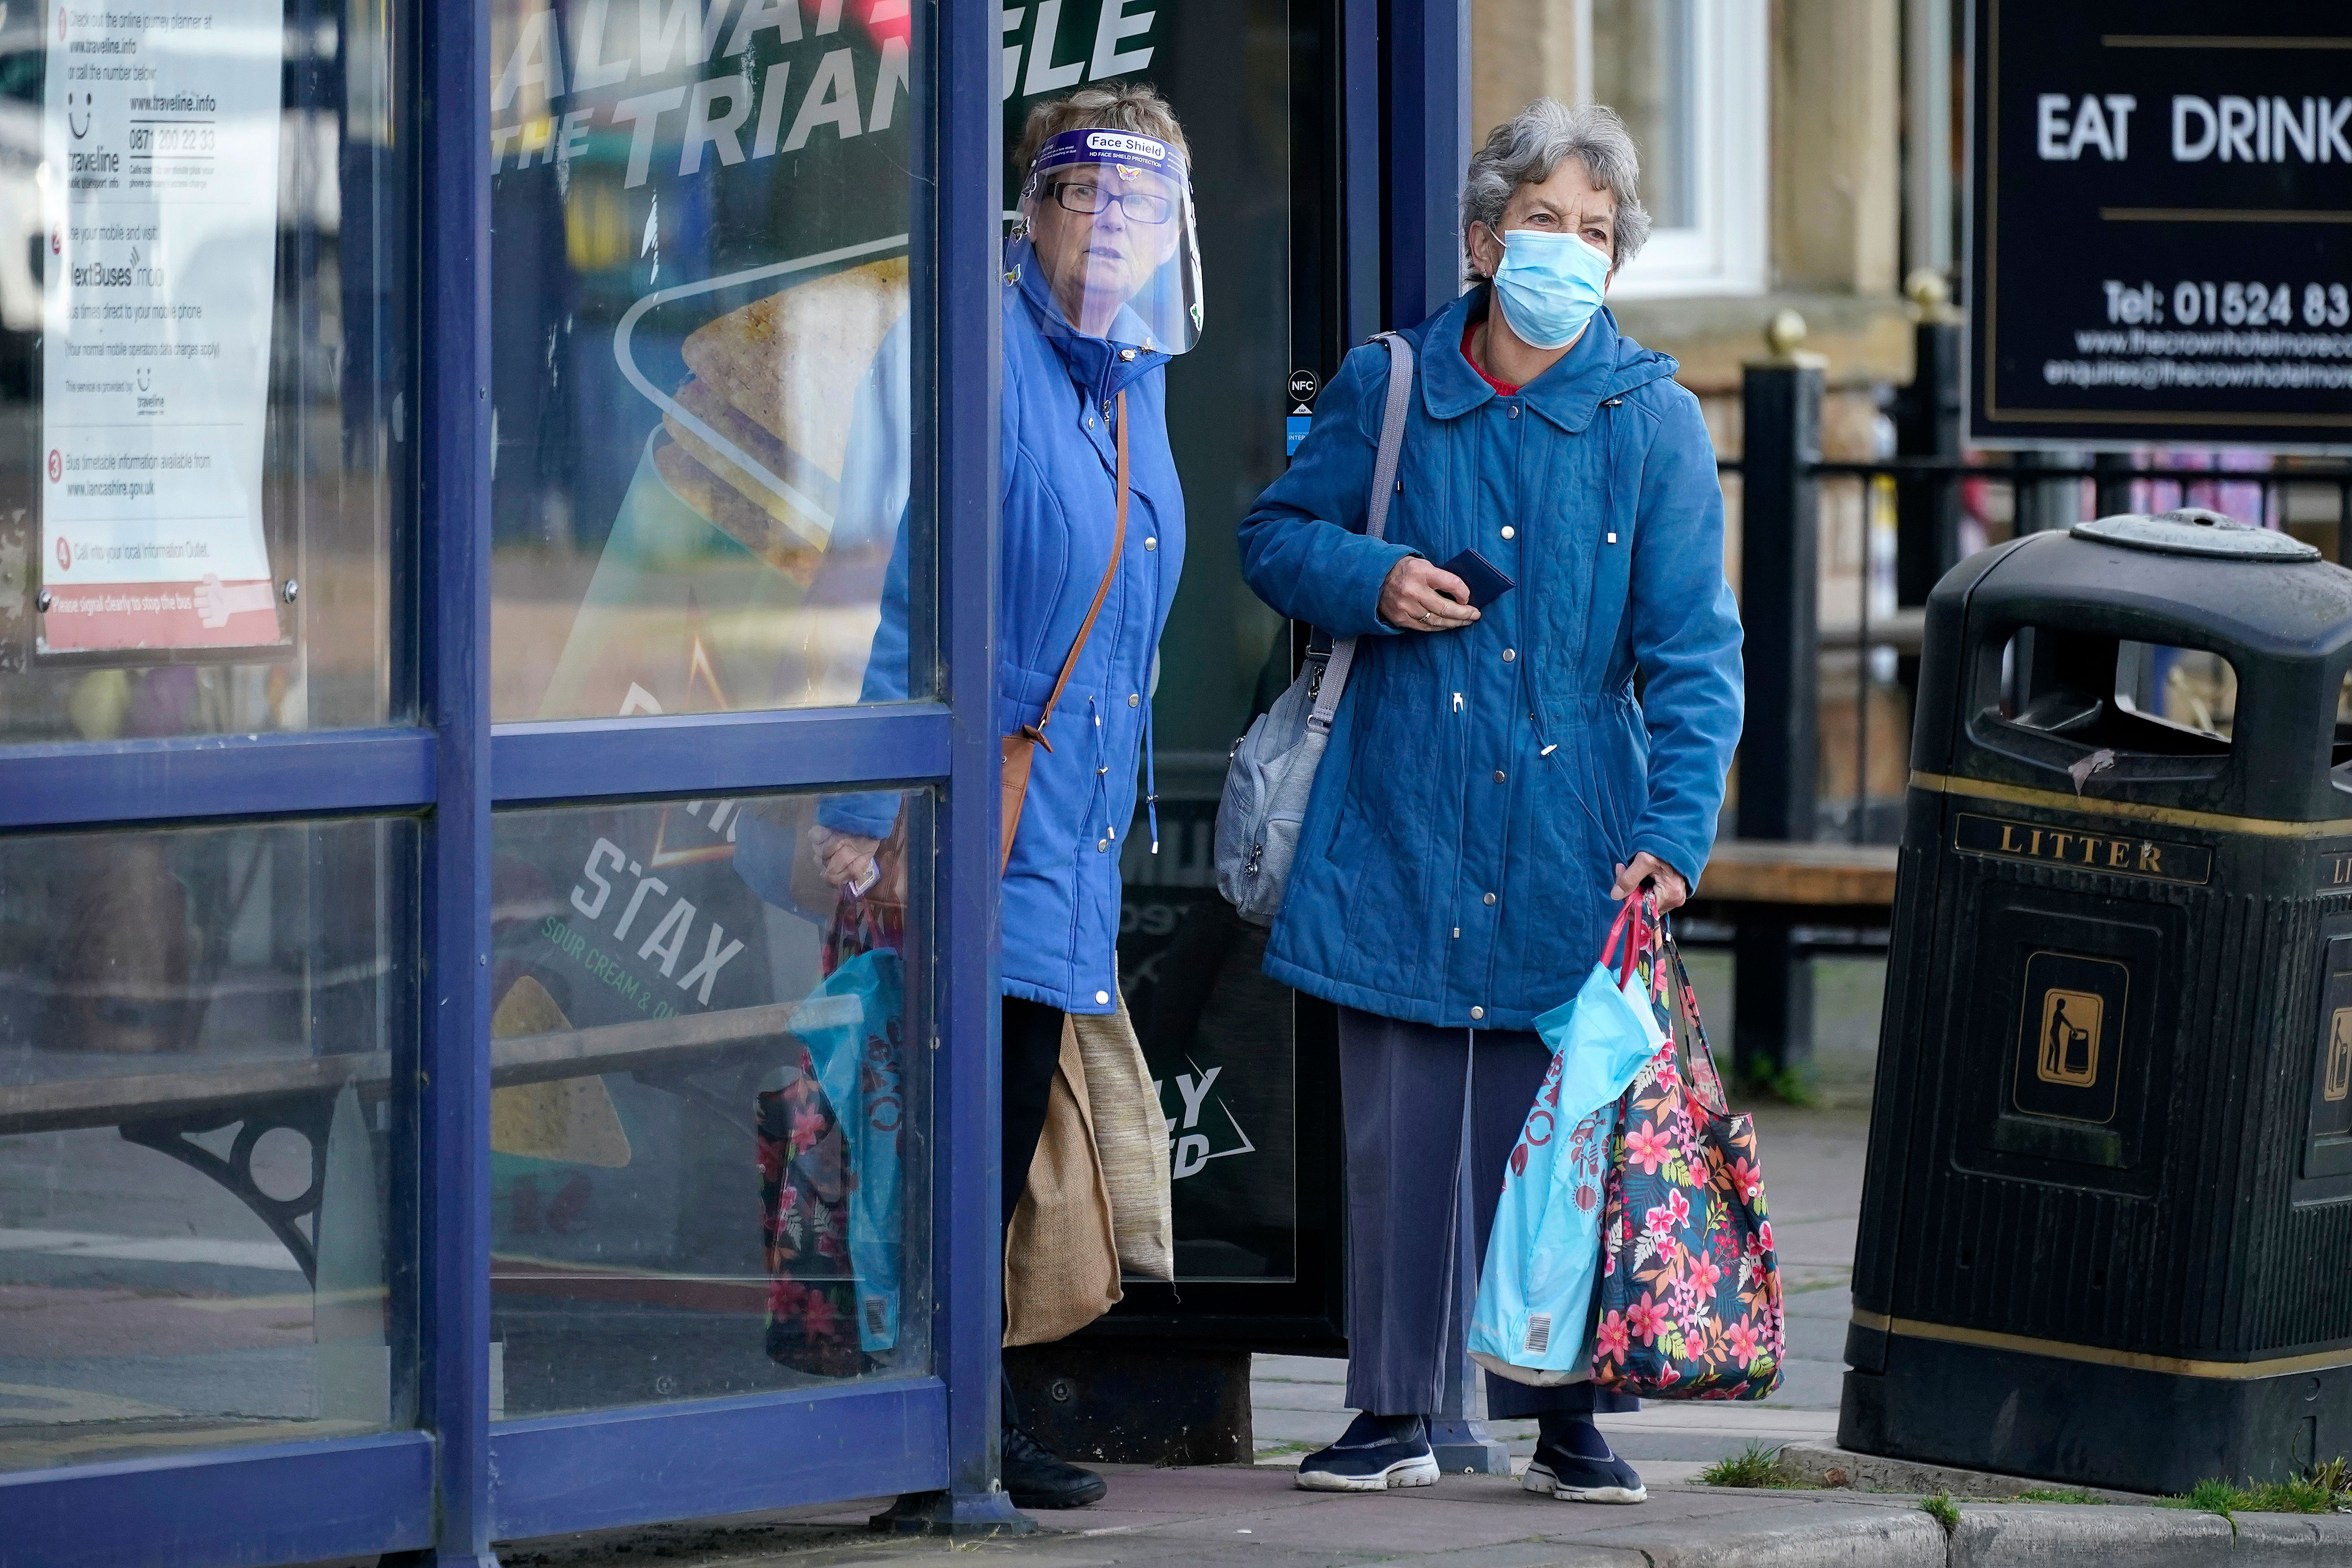 People in Morecambe, England, wait for a bus on October 16.